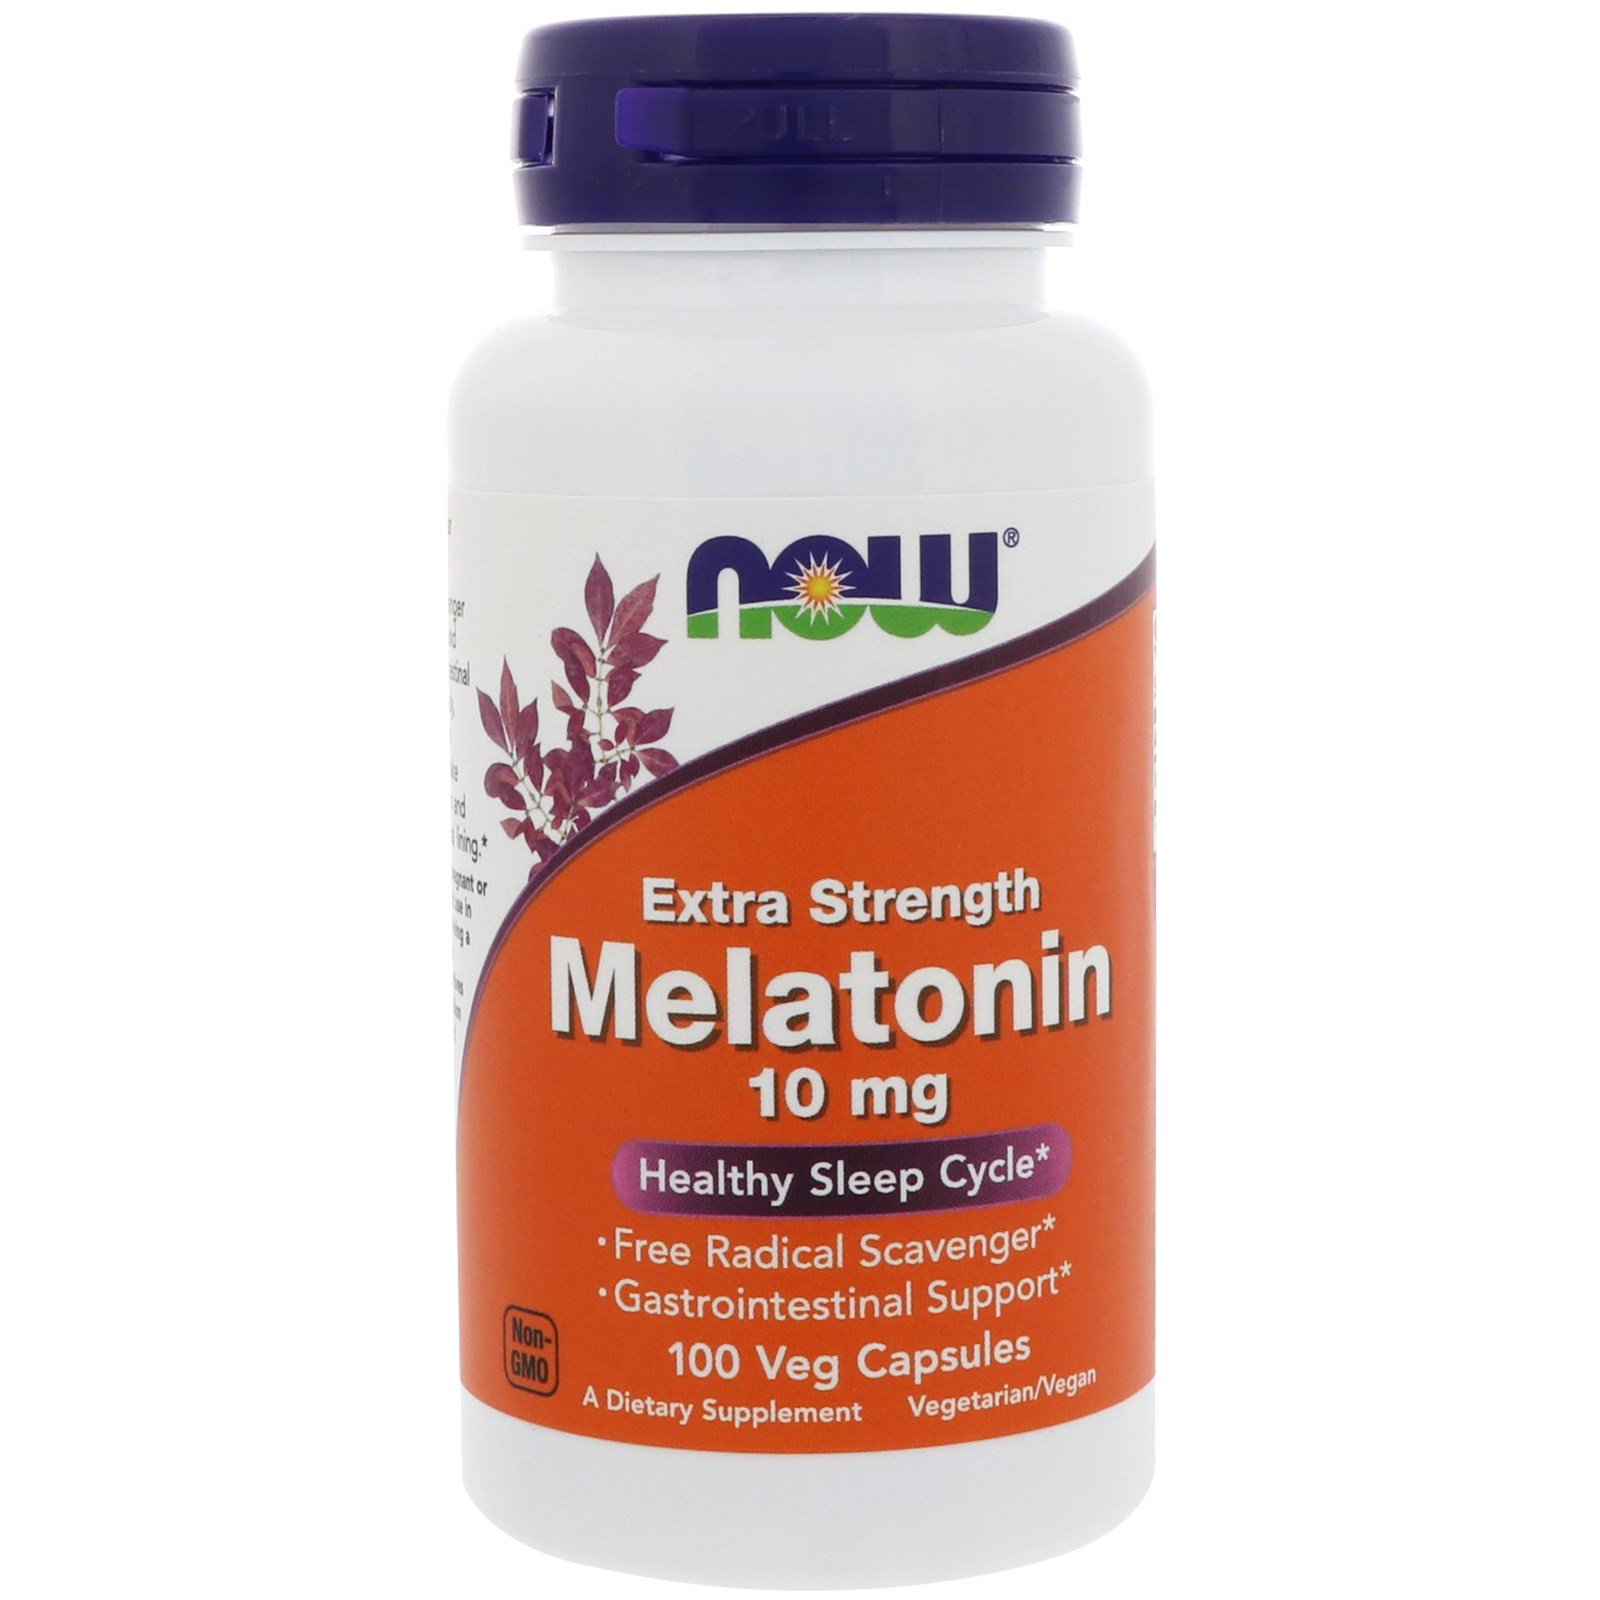 10 mg melatonin